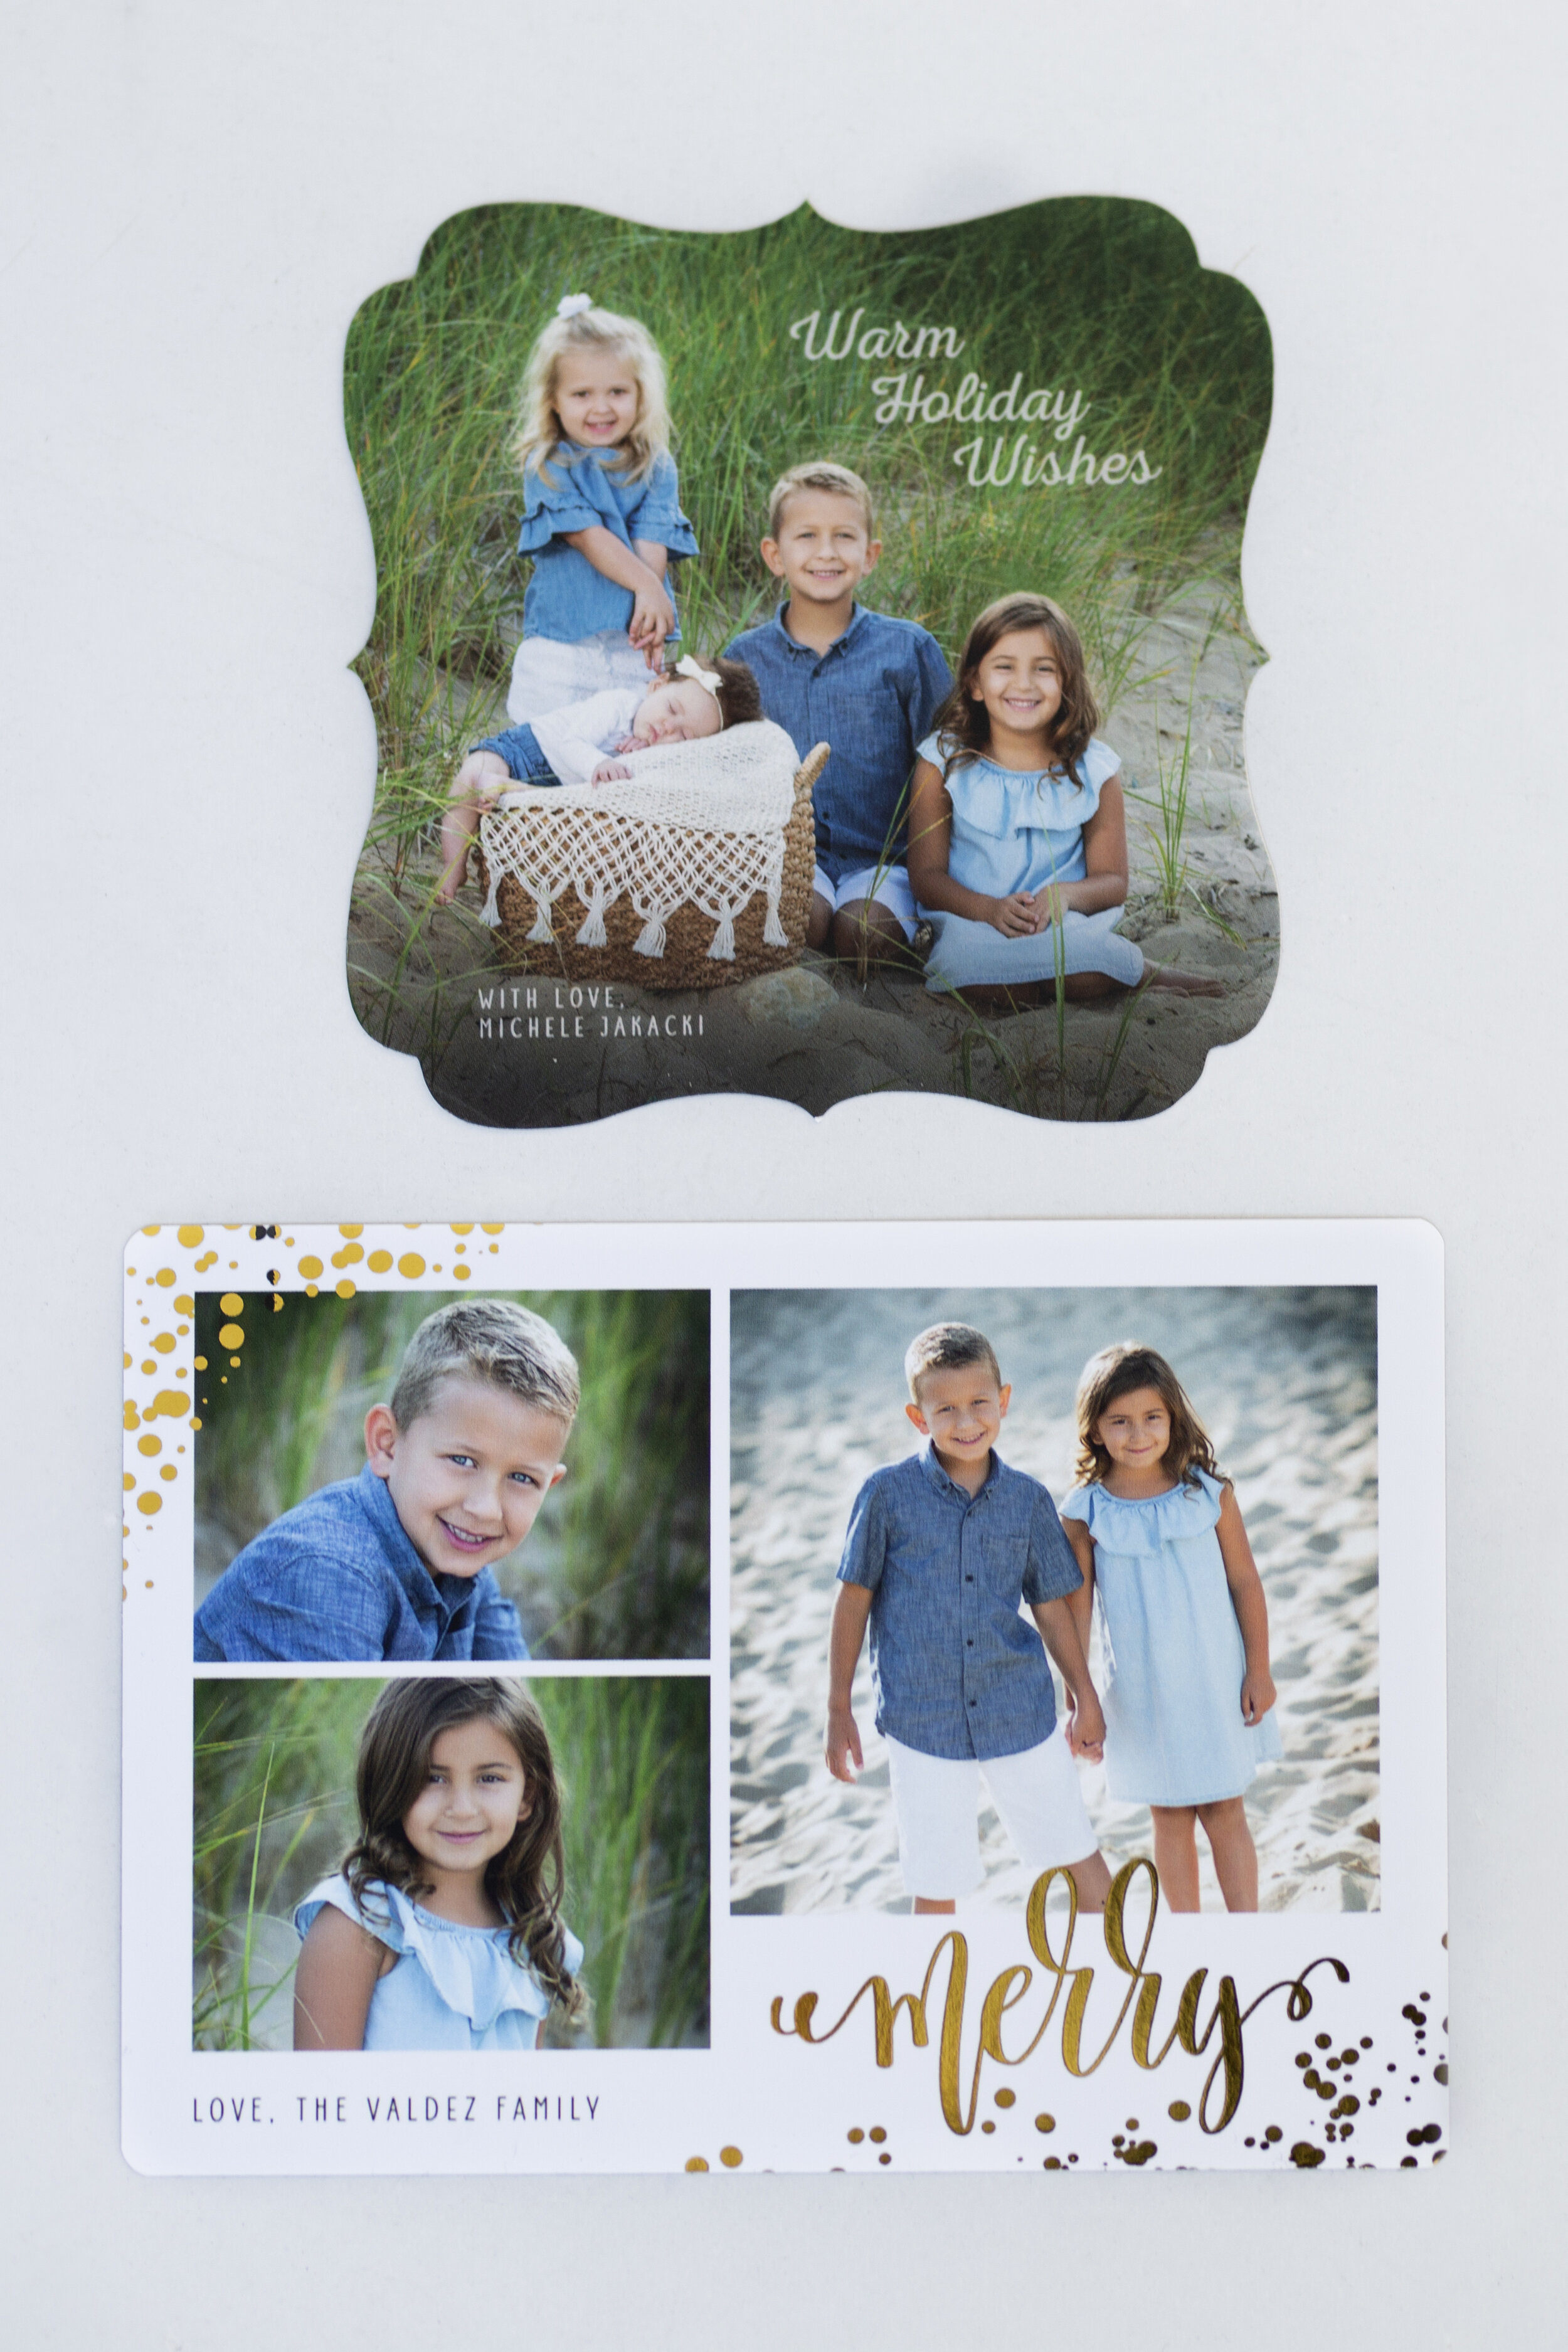 - Custom foil comes in a variety of colors: gold, silver, rose gold, etc. This elegant and stunning material can be done in any font or greeting of your choice. Velvet paper differs from photo paper because of its soft, smooth texture on the photo. As for minimalistic card styles, everyone loves this simple style because it's clean and does not detract from your family portrait(s).